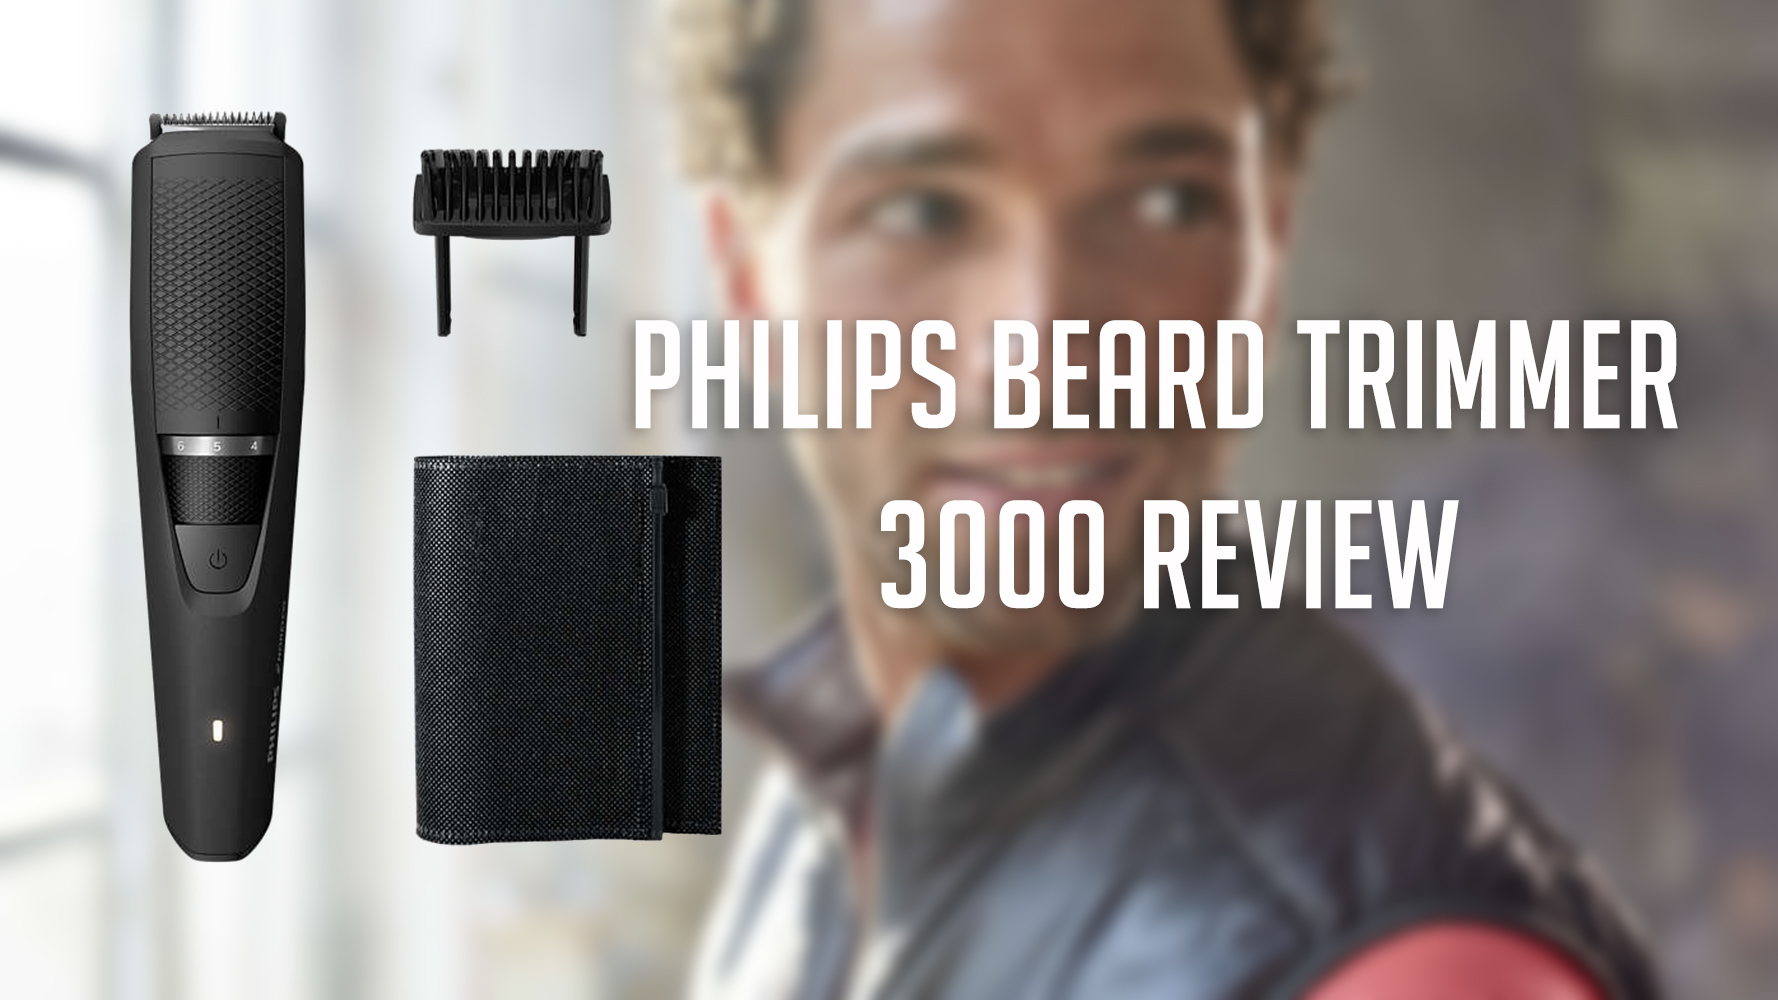 Philips Beard Trimmer 3000 Review